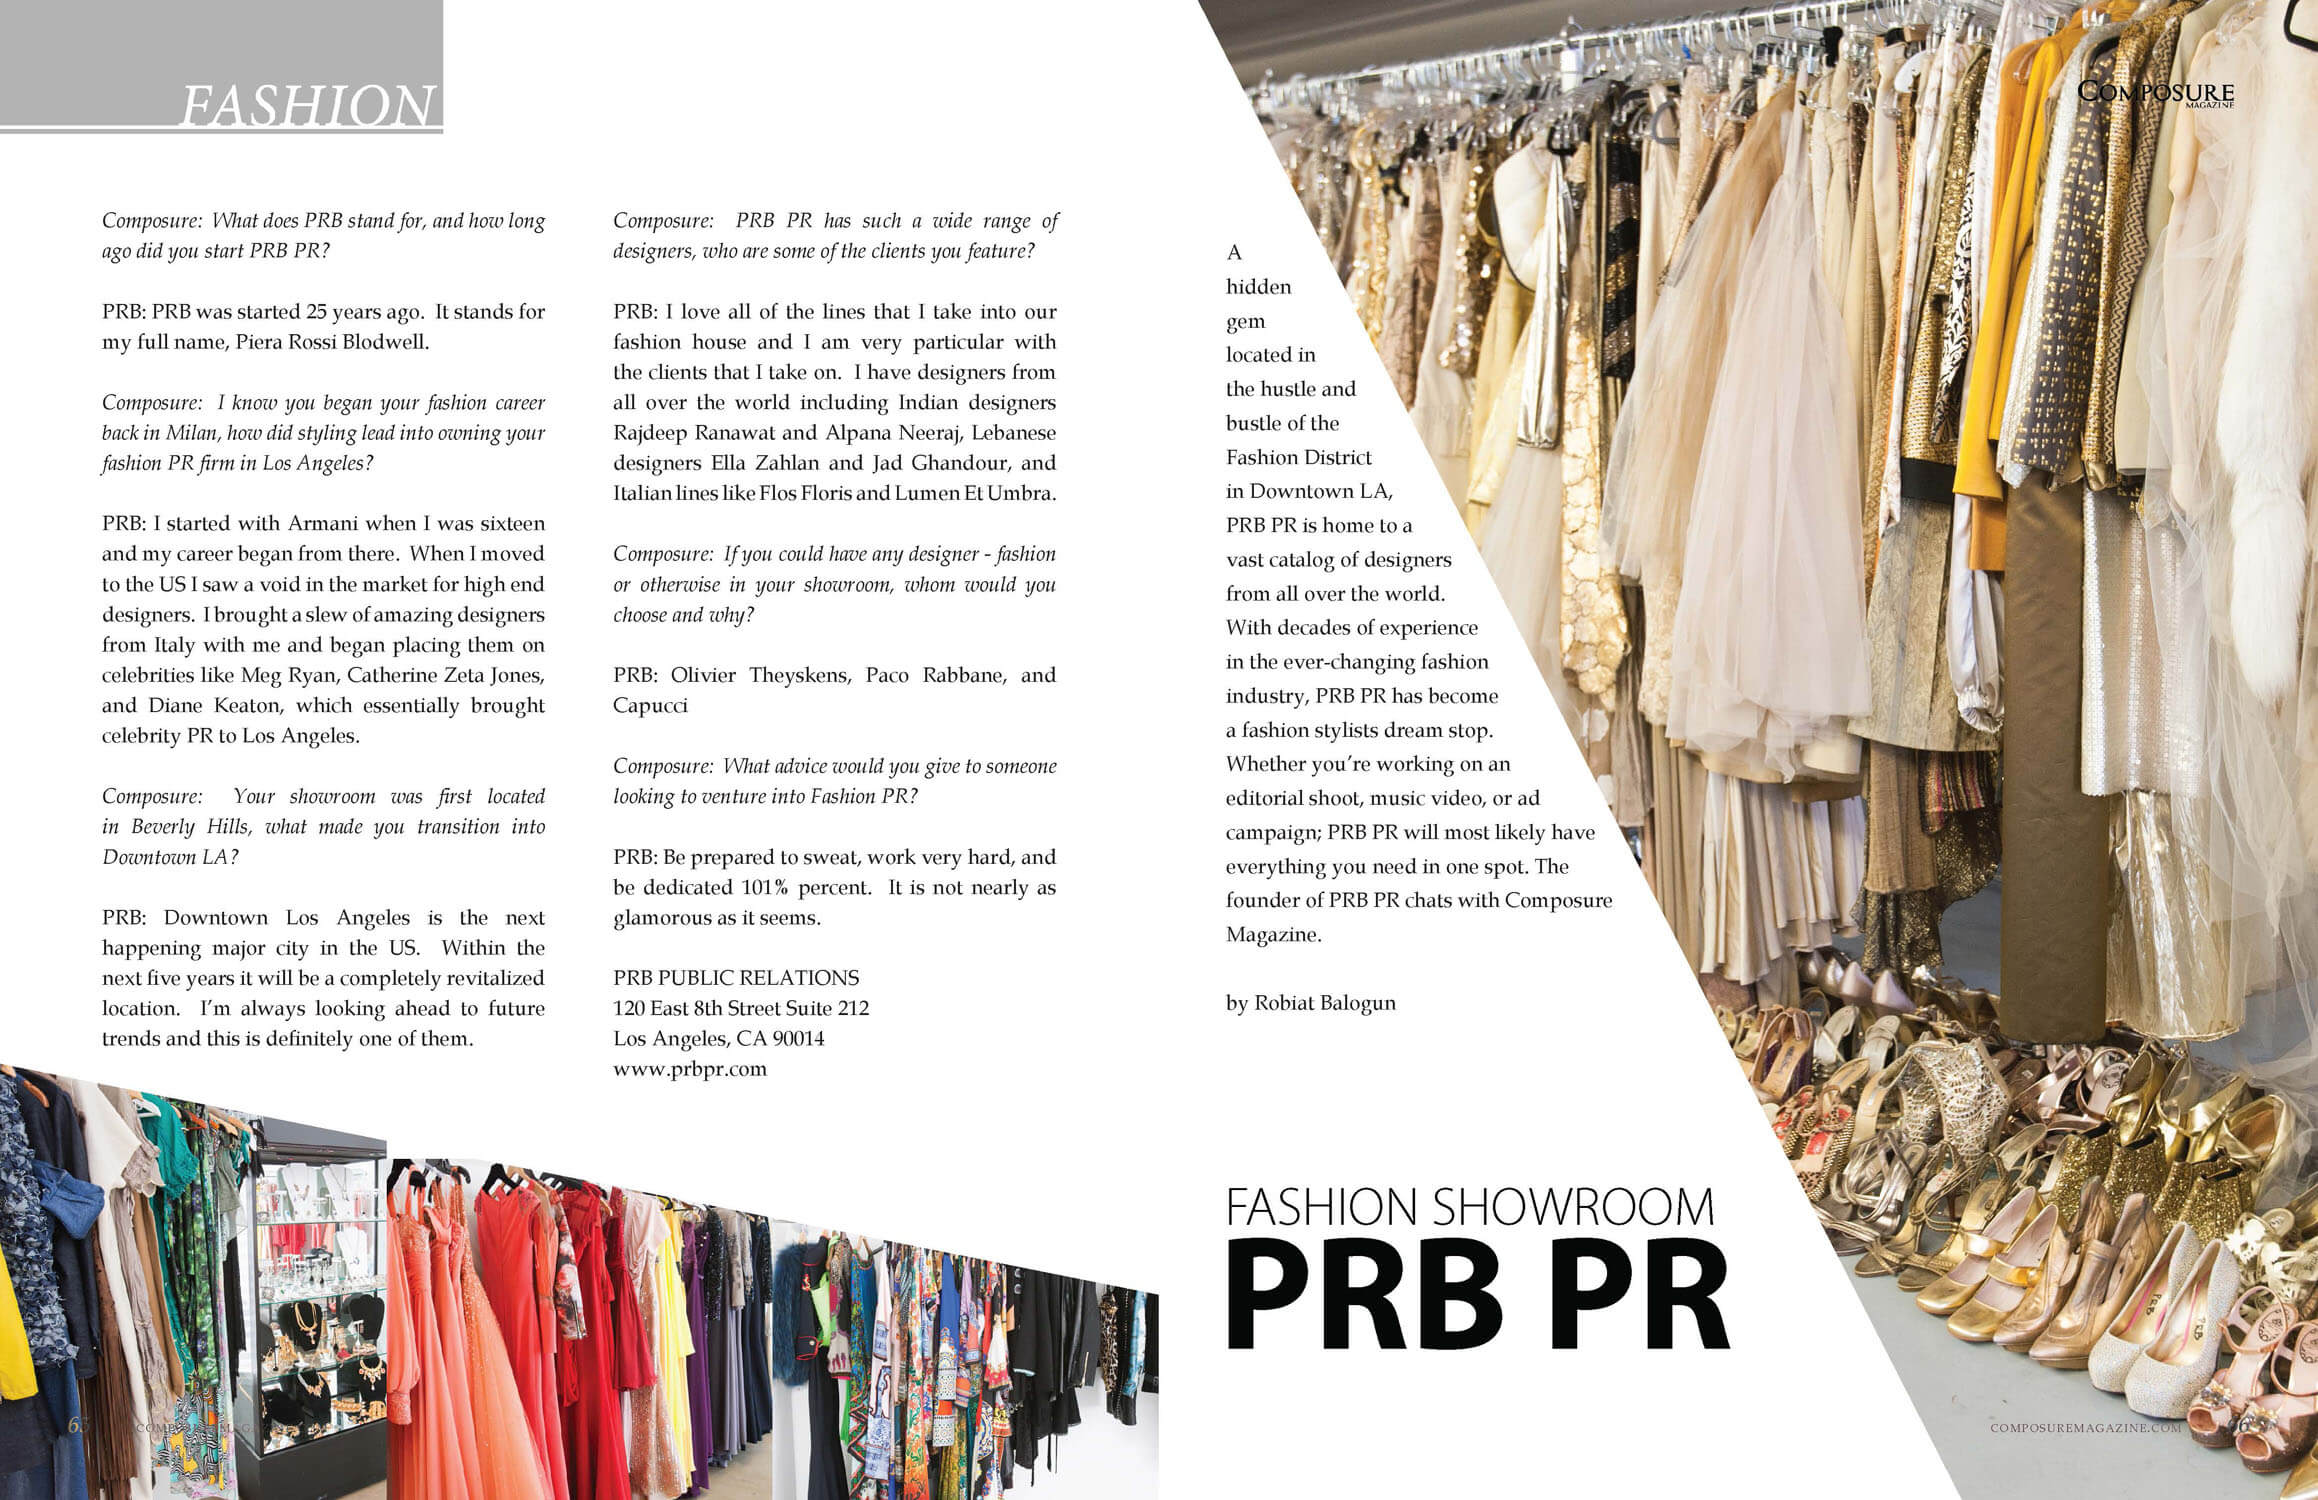 Fashion Showroom PRB PR